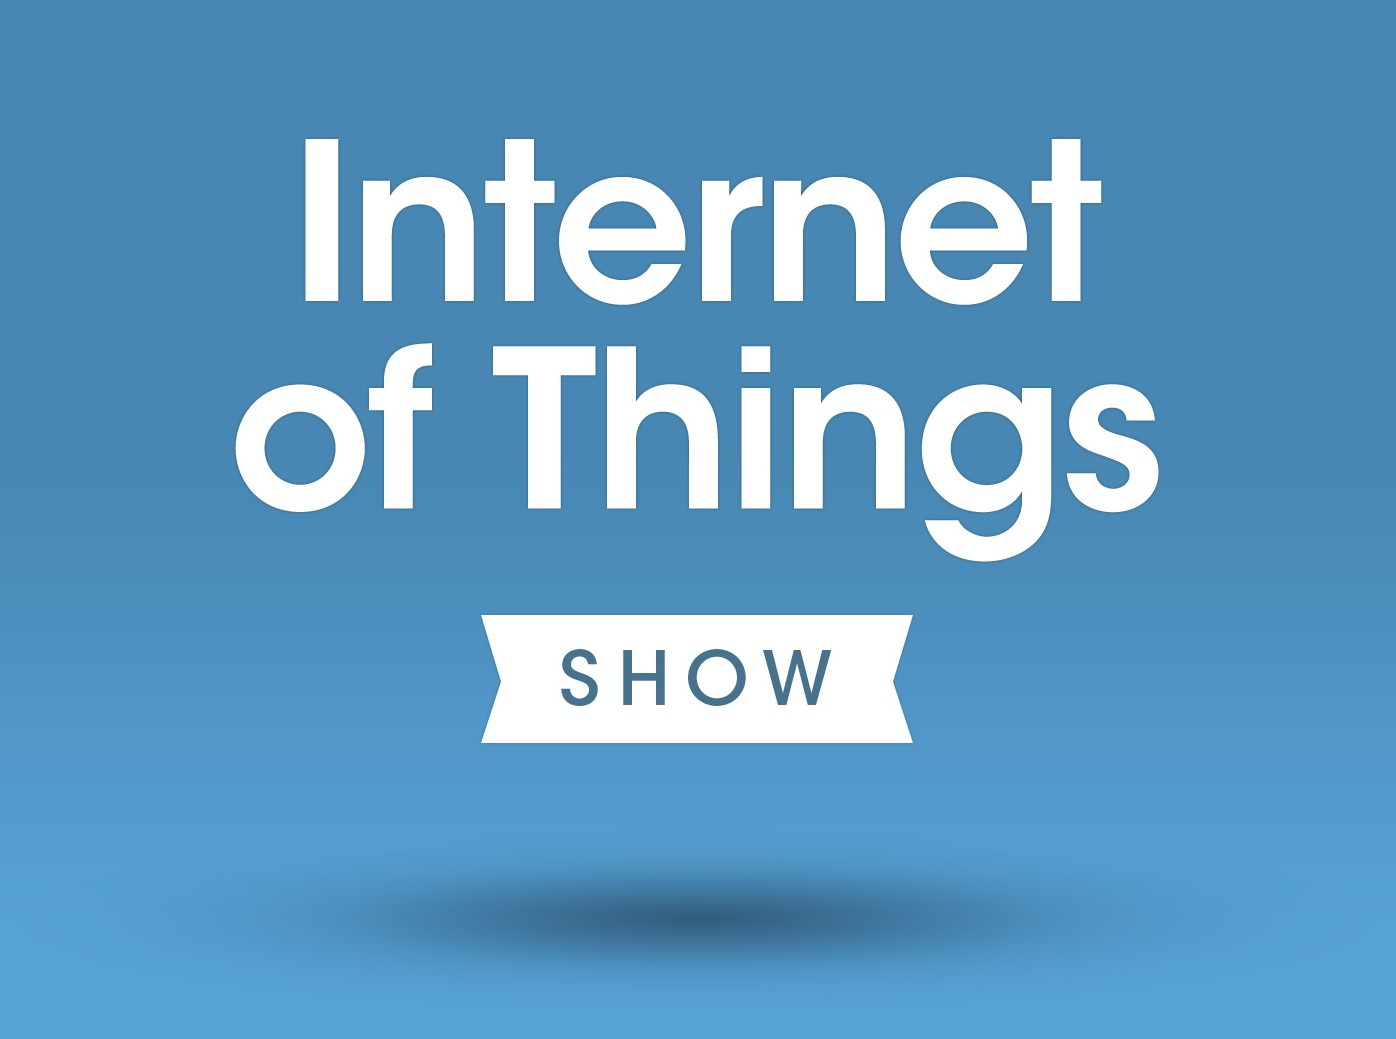 GigaOM-internet-of-things-show_1400x1400